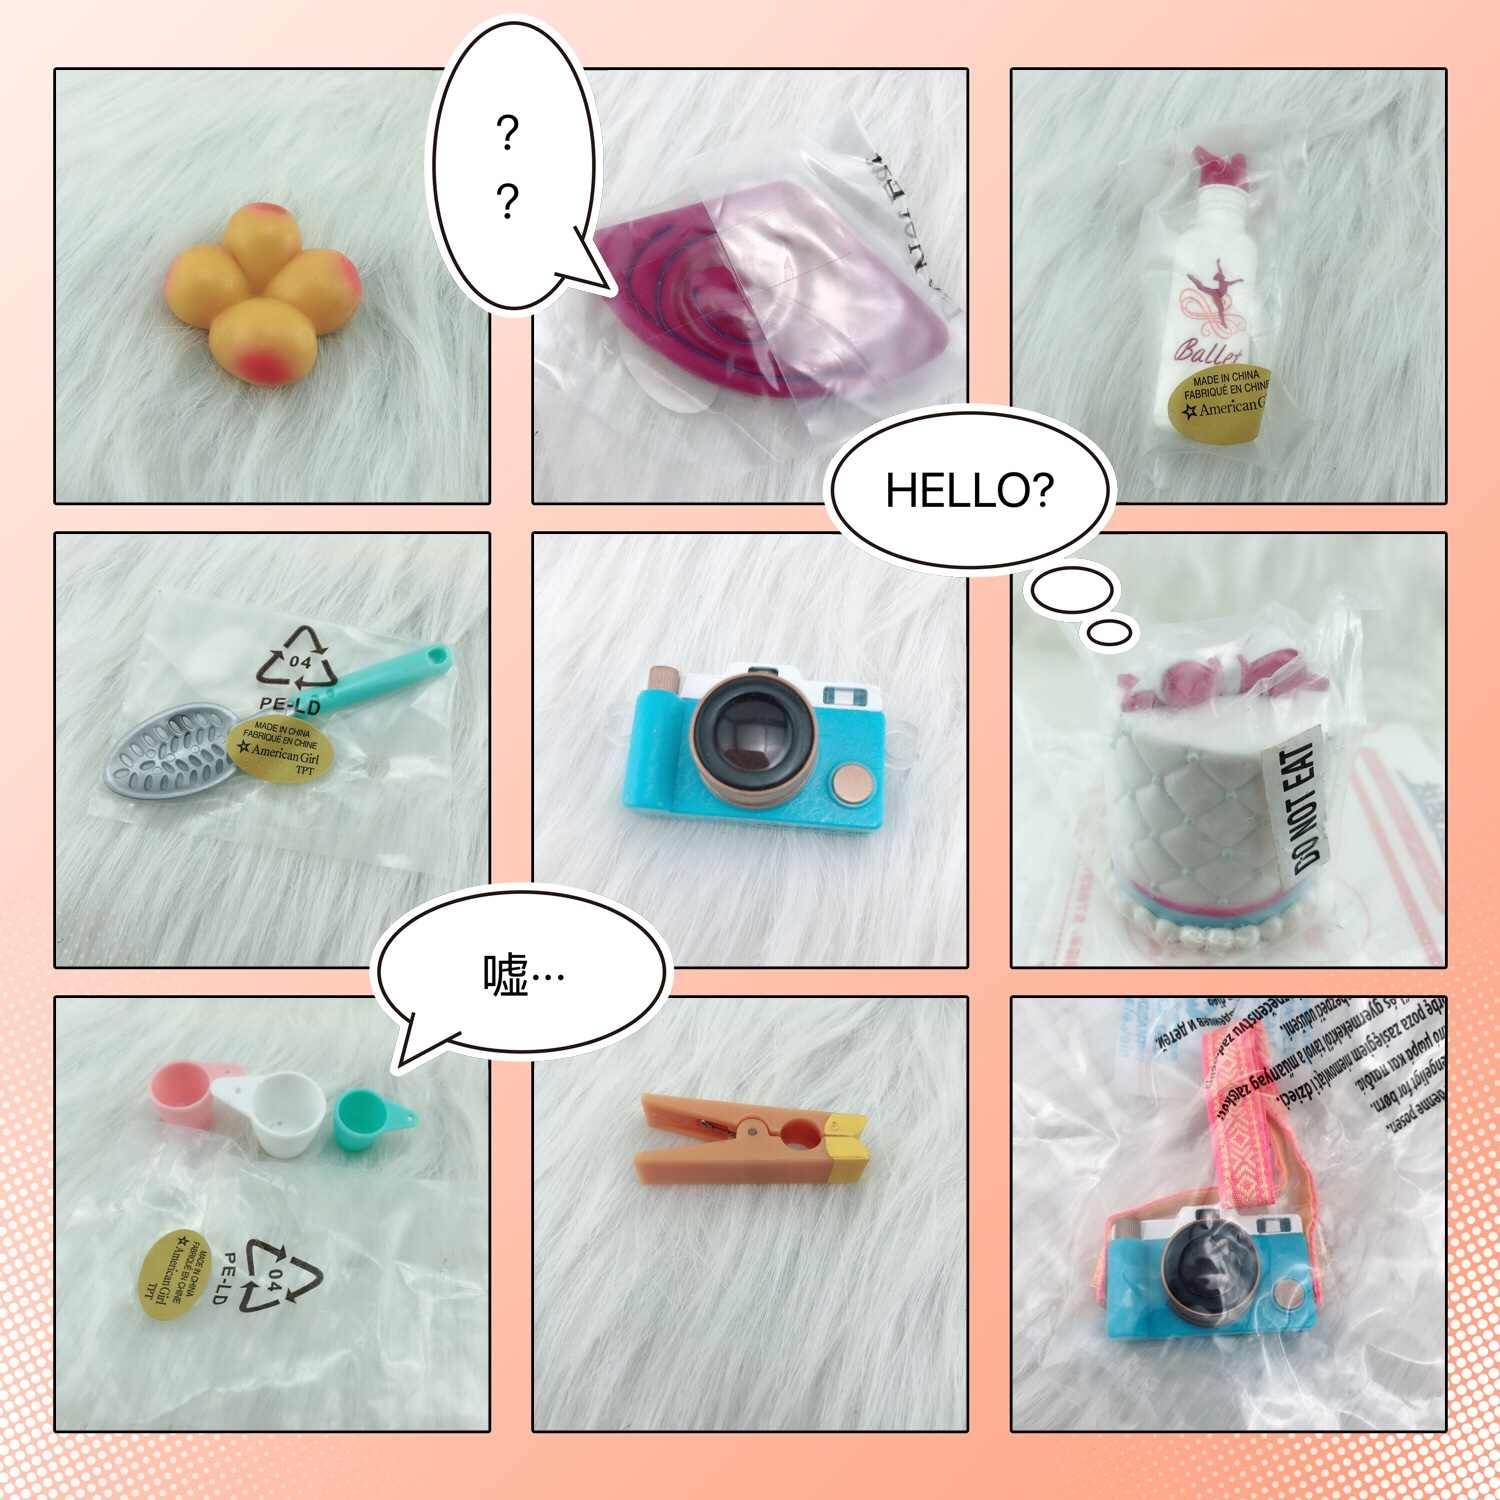 b8a4717136a Accessories for American girl dolls accessories camera fan cake food play  house toys gift for girl